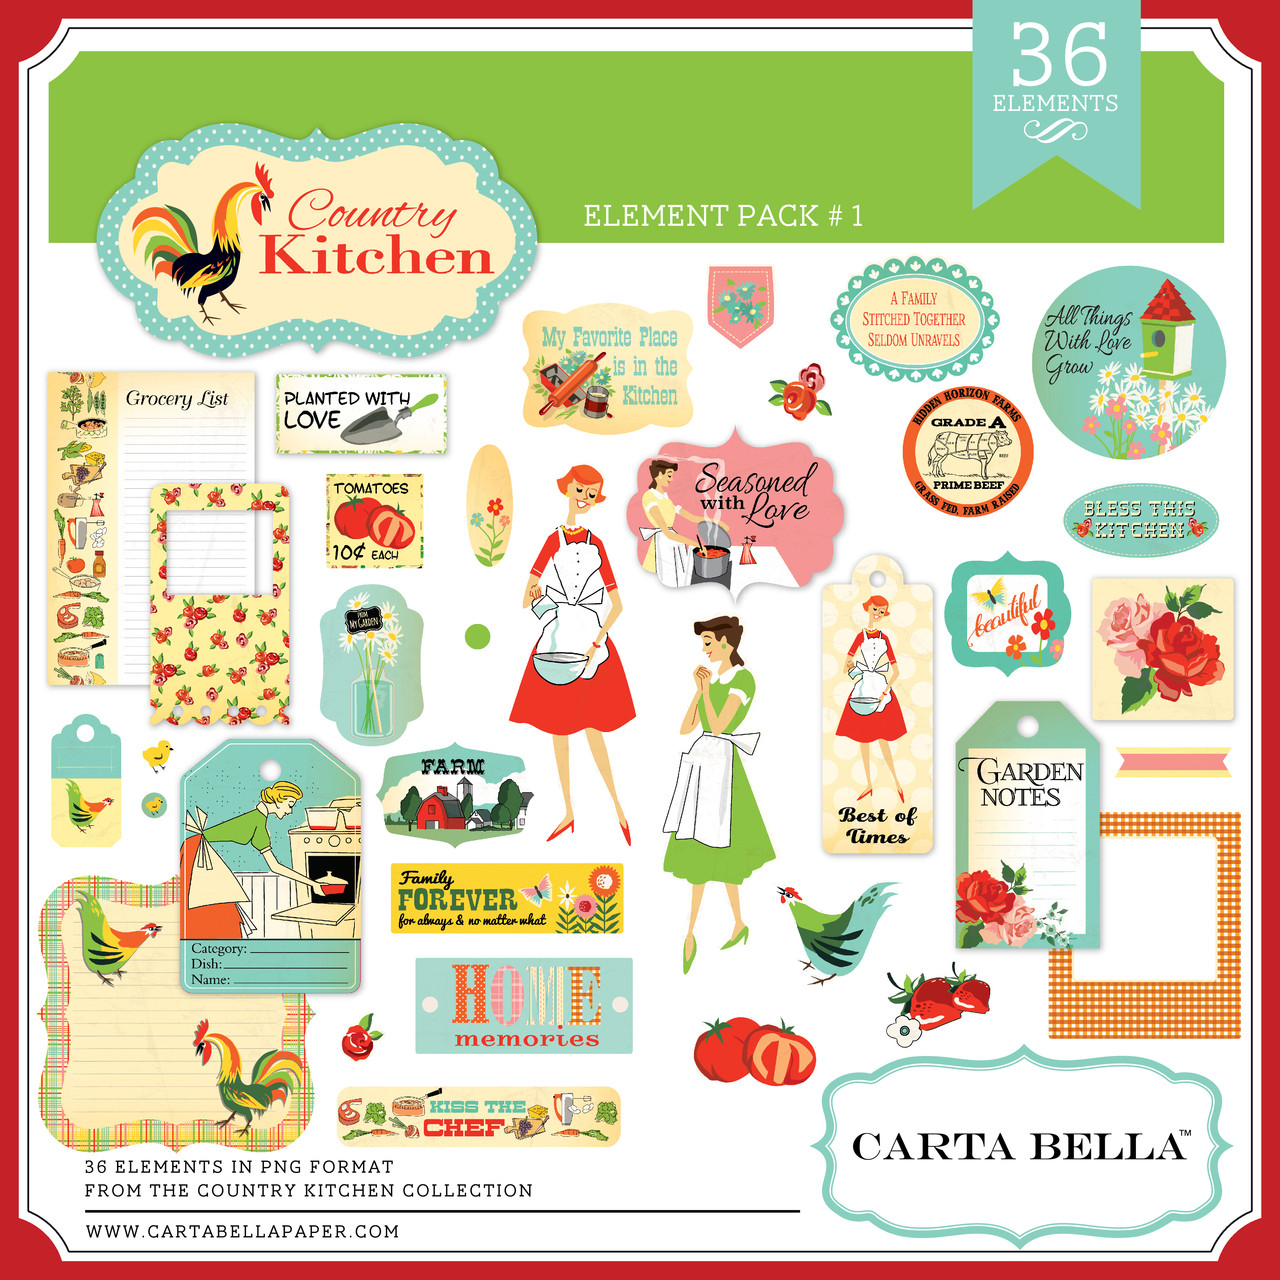 Country Kitchen Element Pack #1